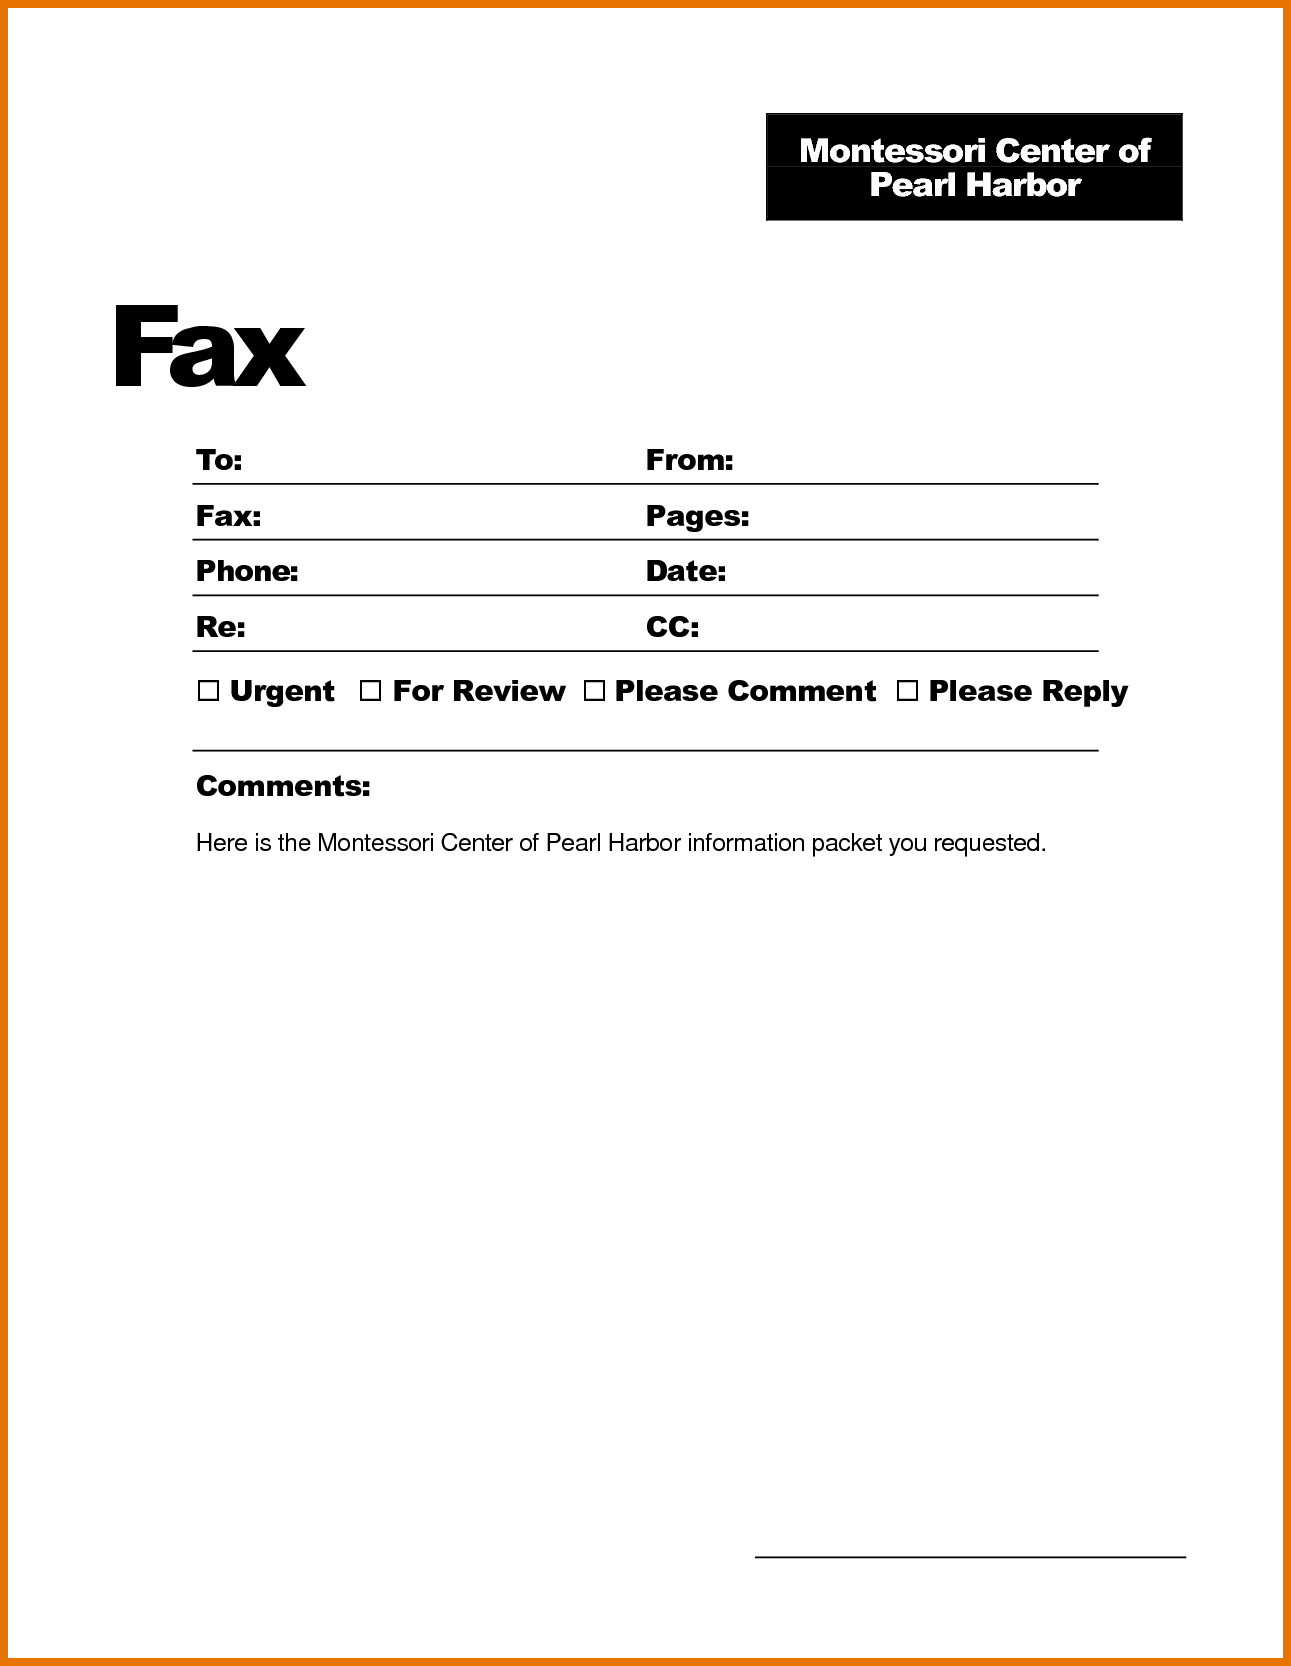 sample fax cover sheet